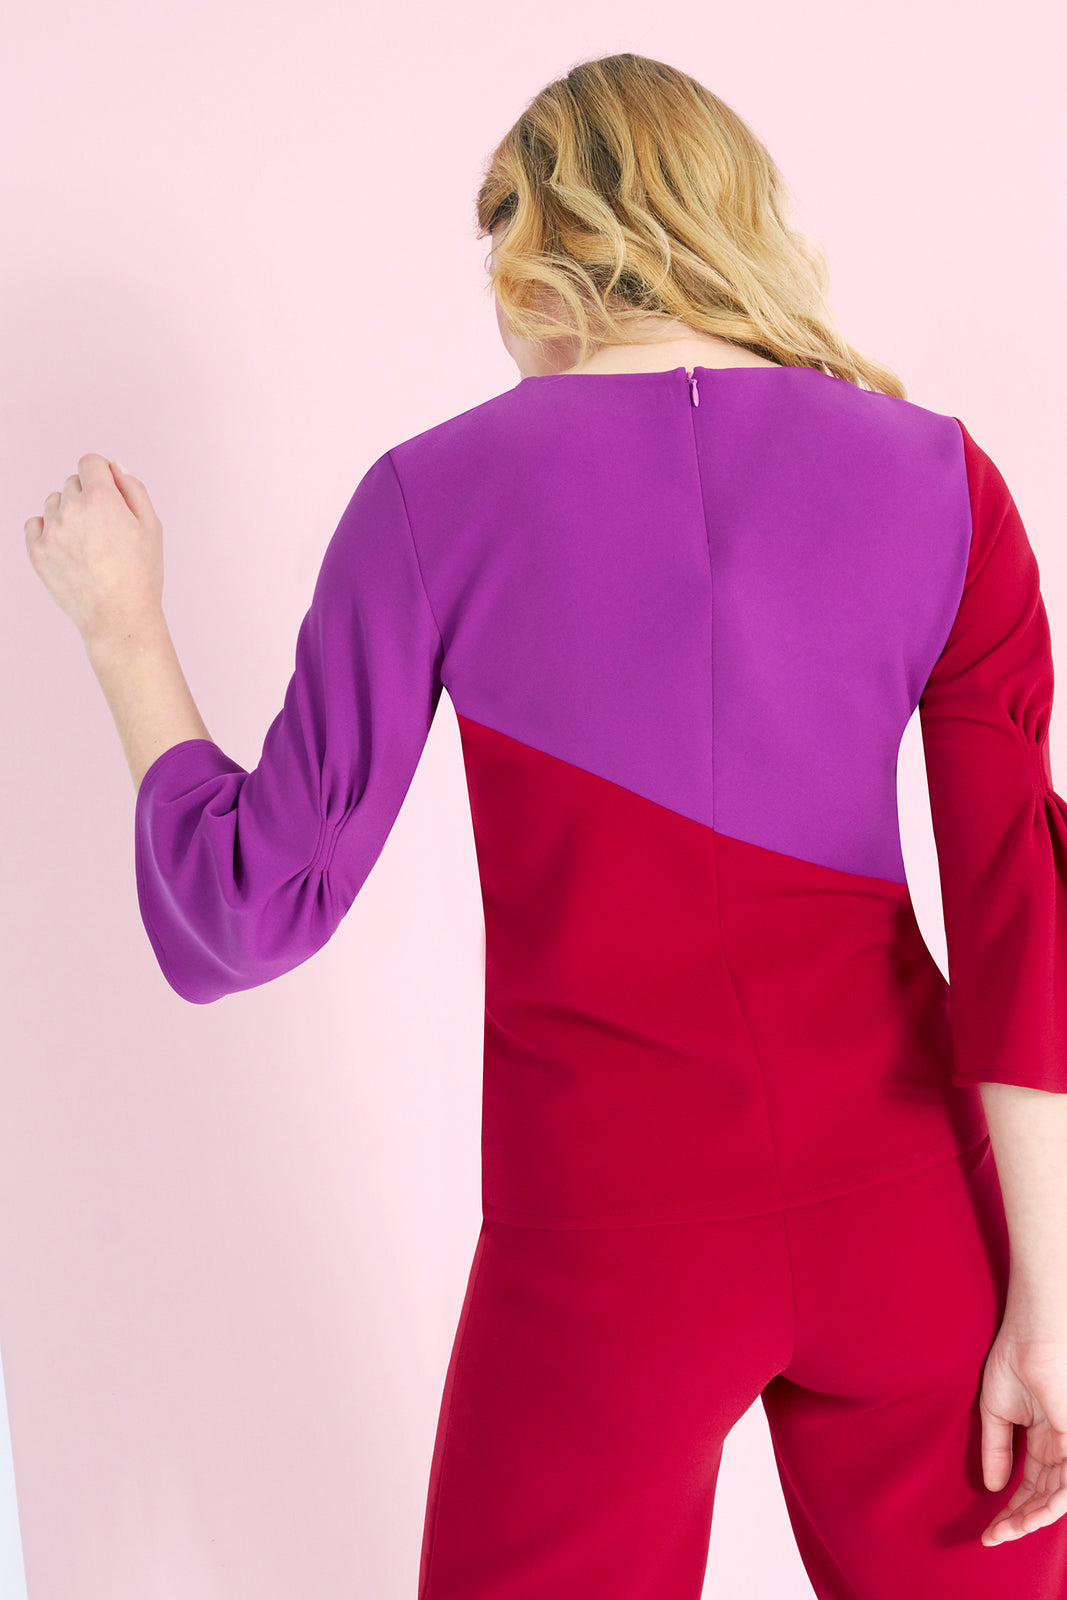 LUISA - Color Block Bluse mit Raffung